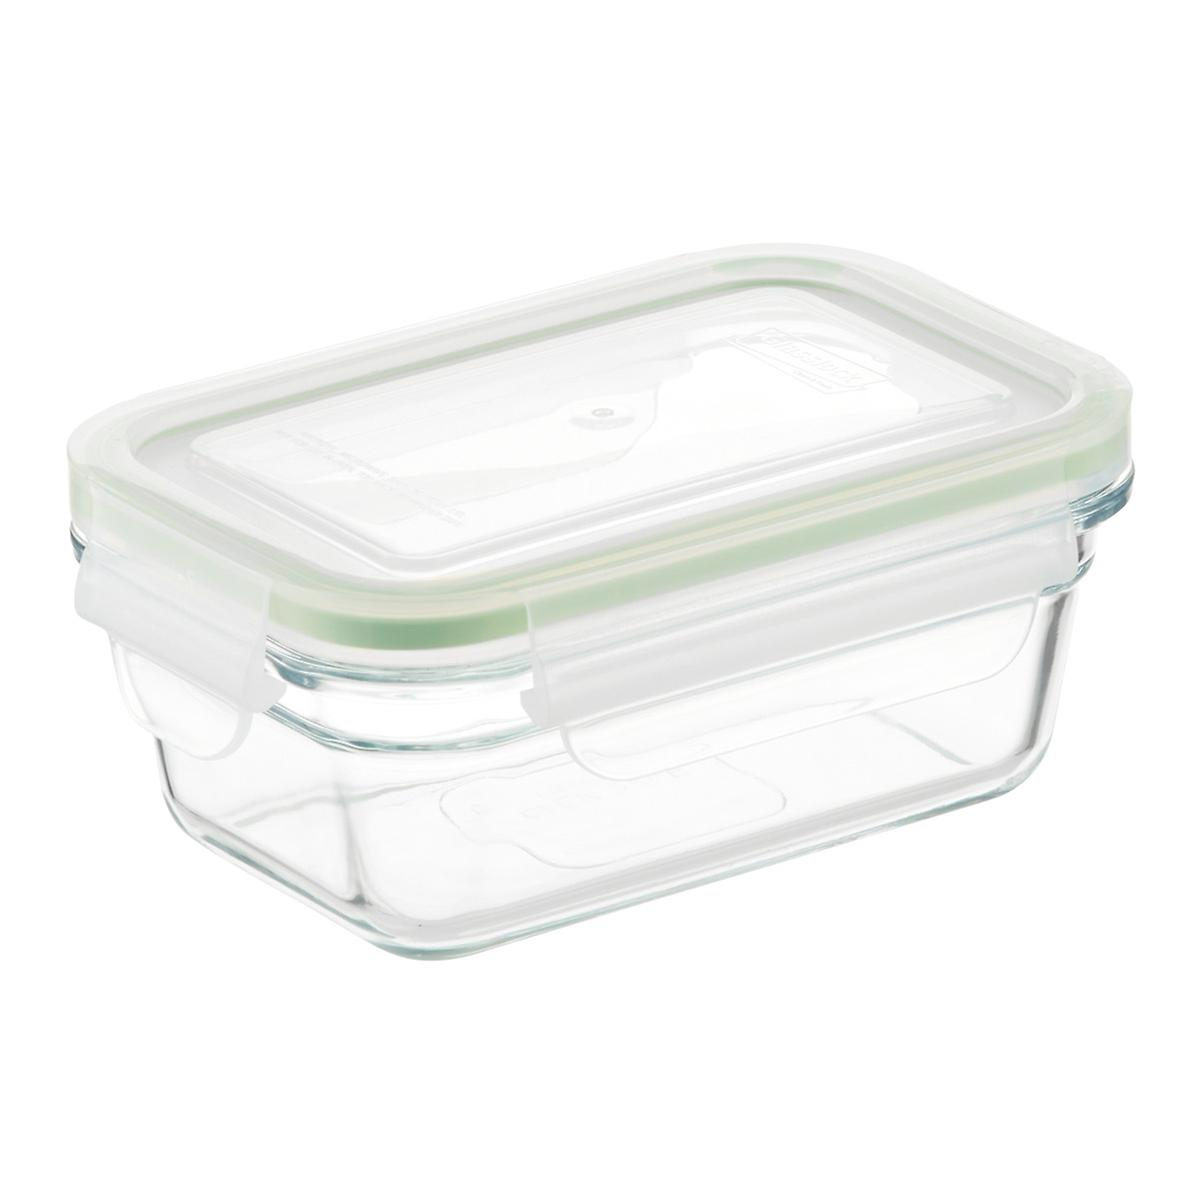 Glasslock Rectangular Food Containers With Lids The